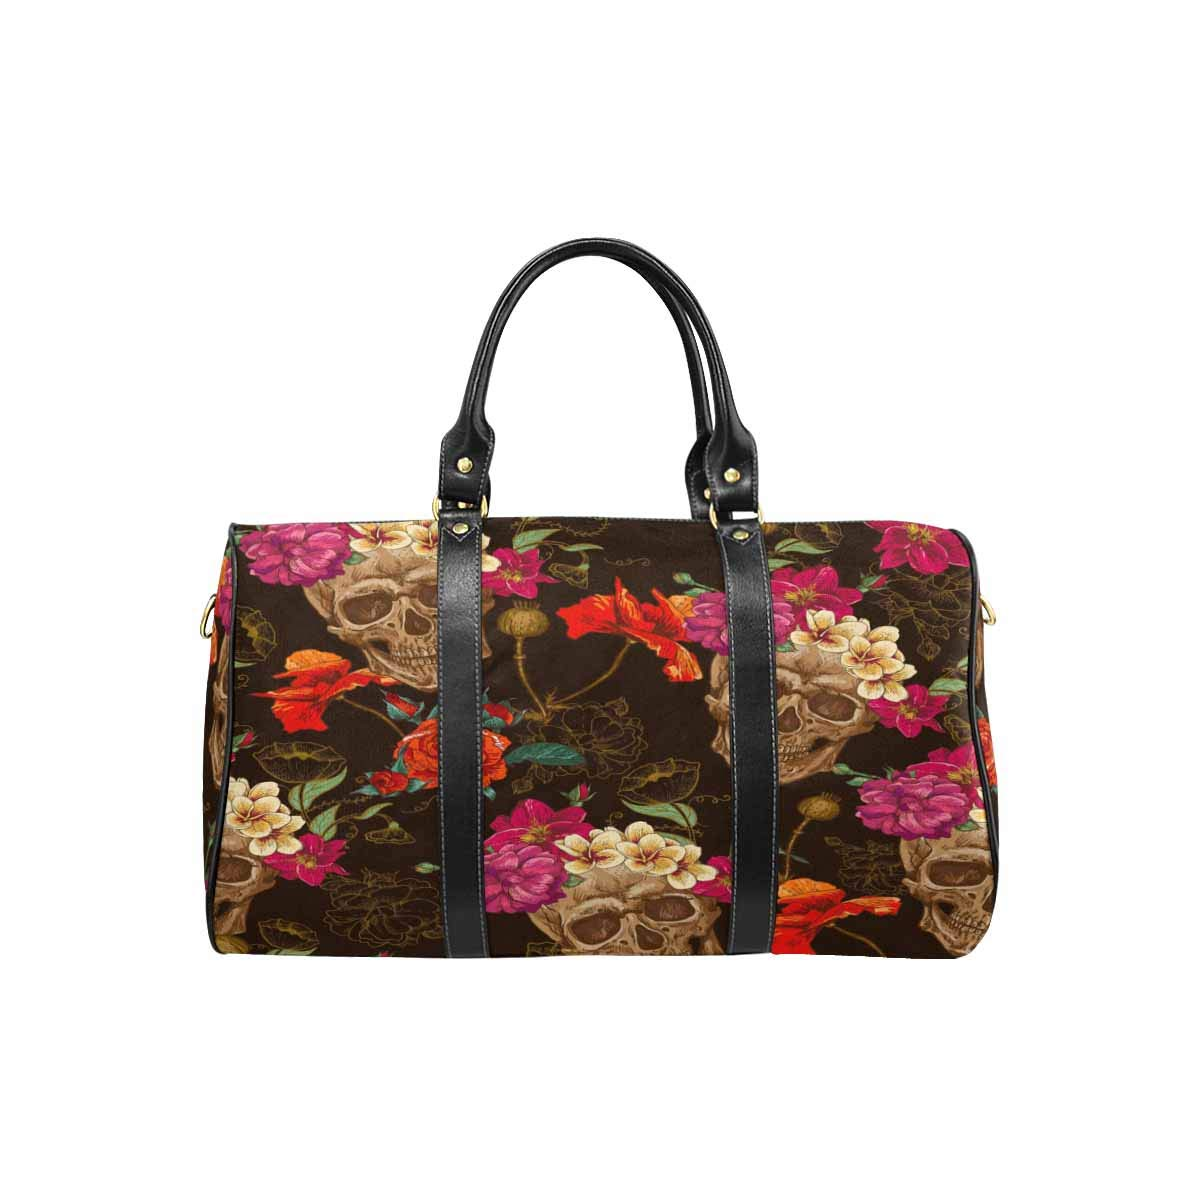 InterestPrint Weekender Bag Overnight Carry-on Tote Duffel Bag Skull and Flowers